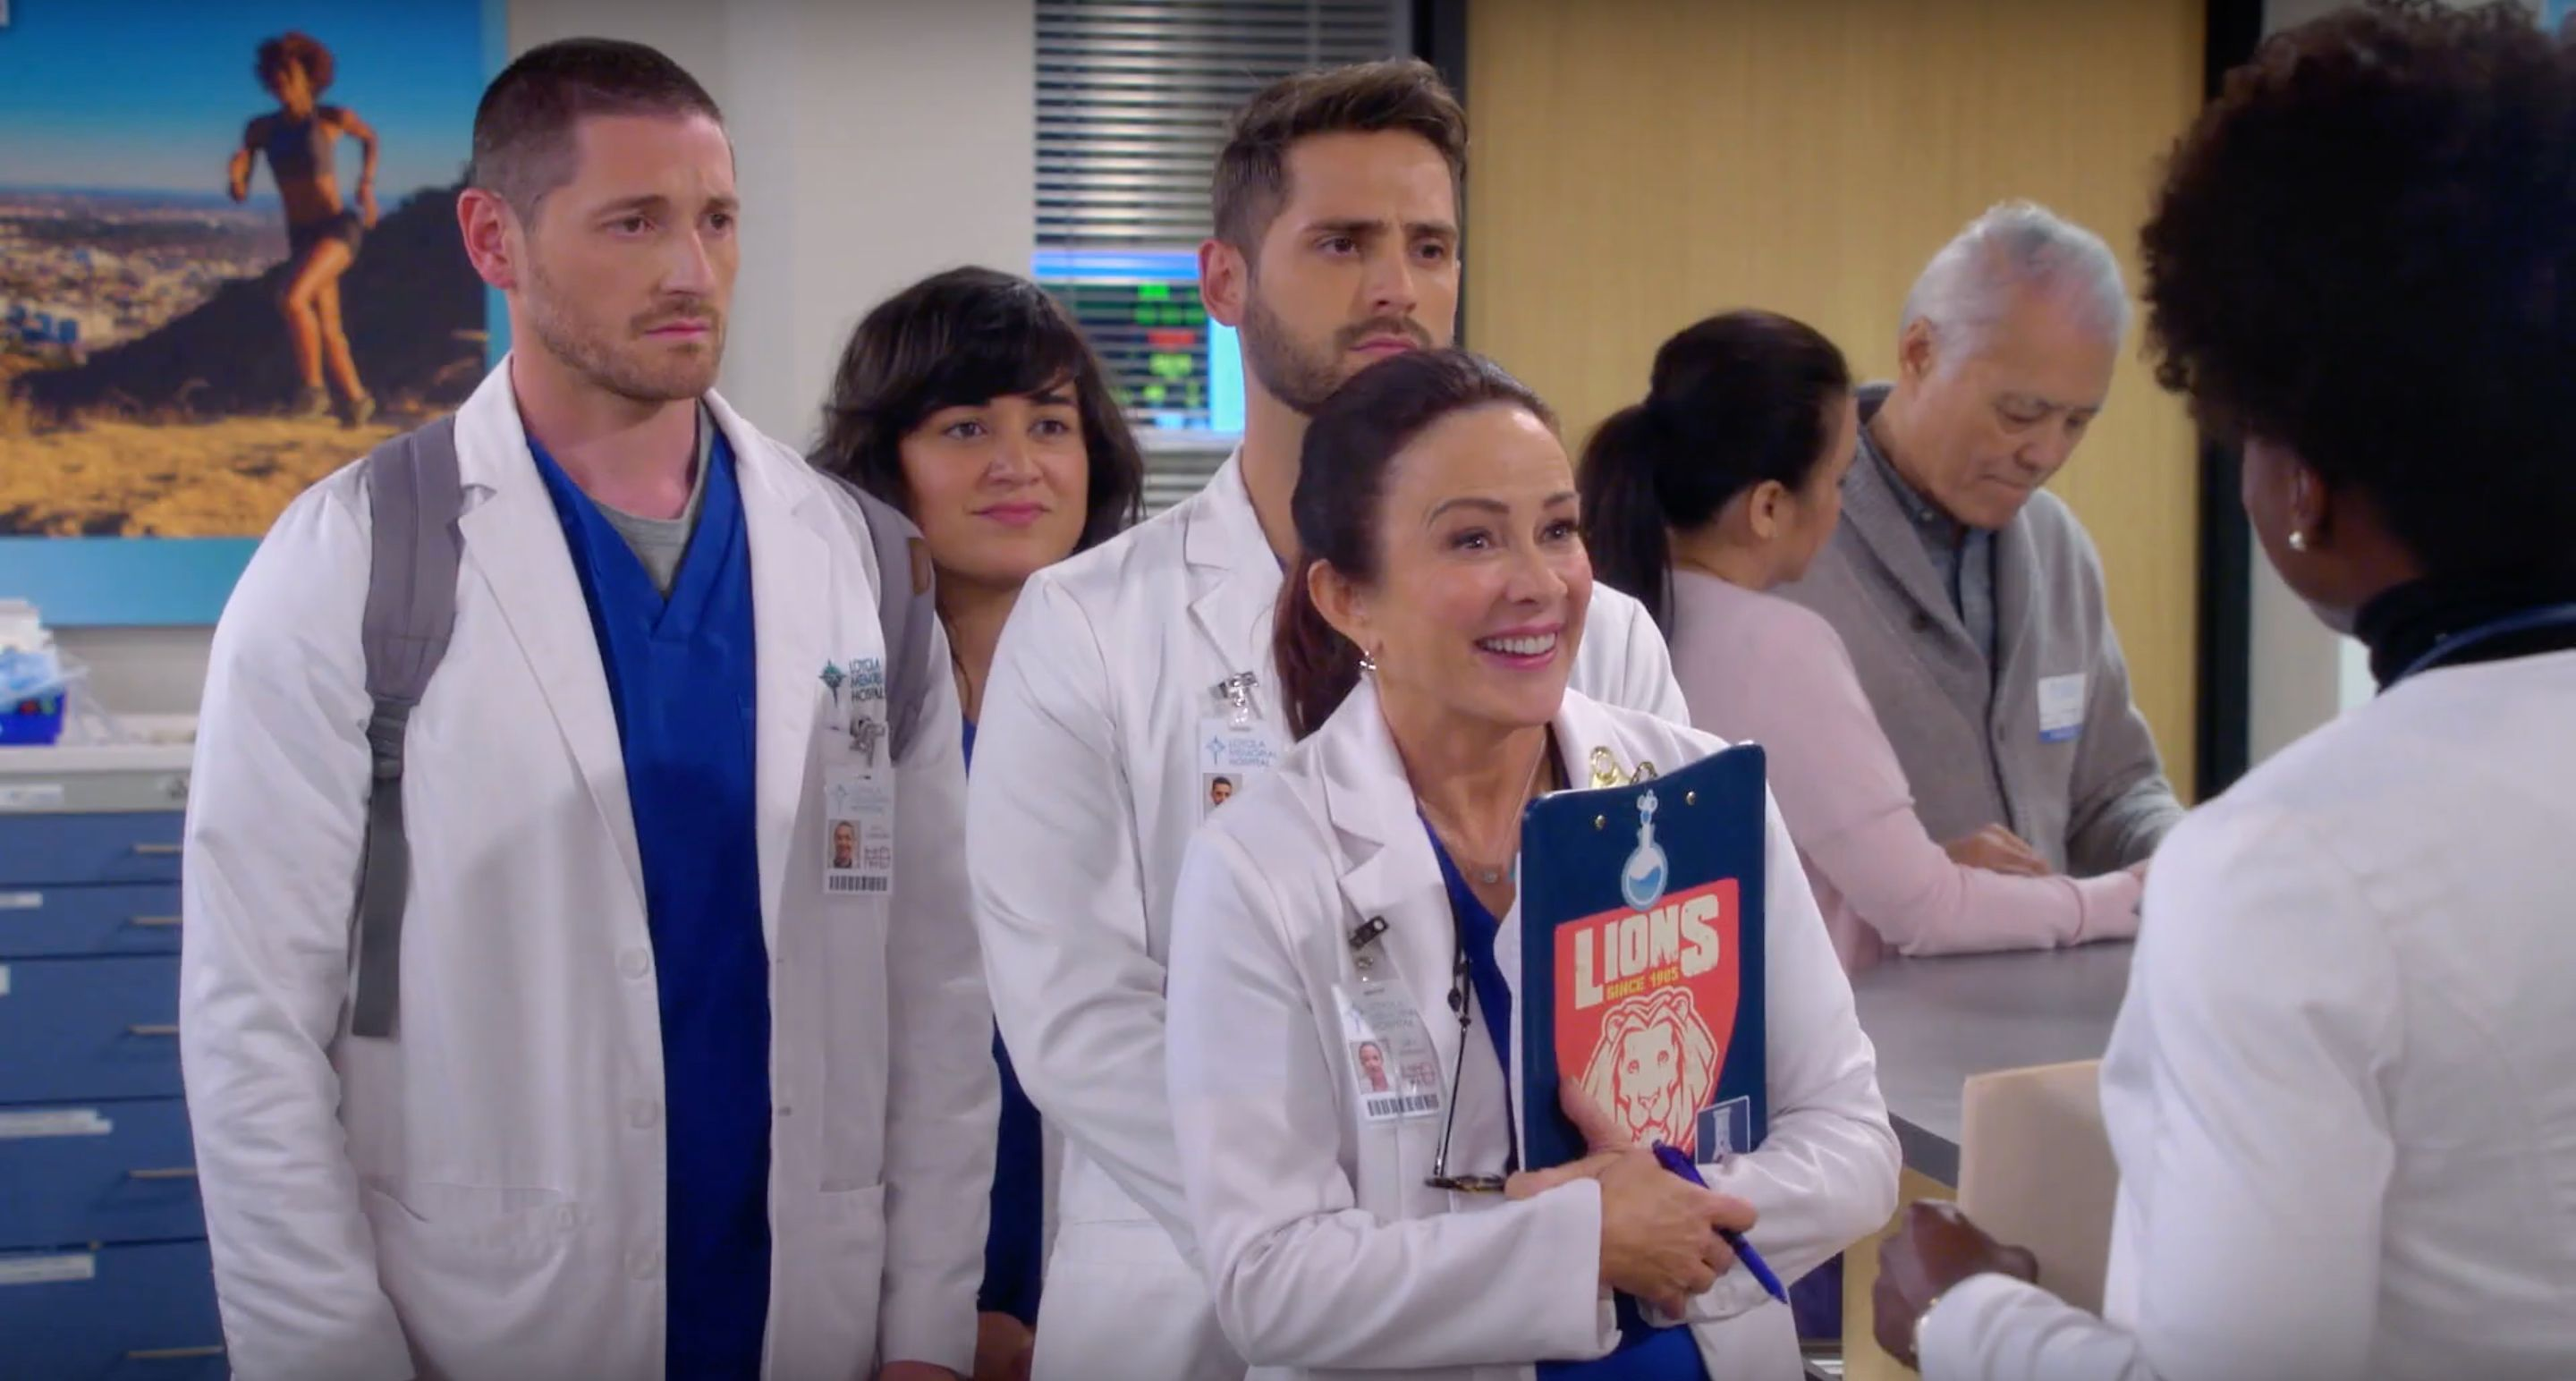 Patricia Heaton Finds A Silver Fox At Her Hospital In The Trailer for CBS's Carol's Second Act